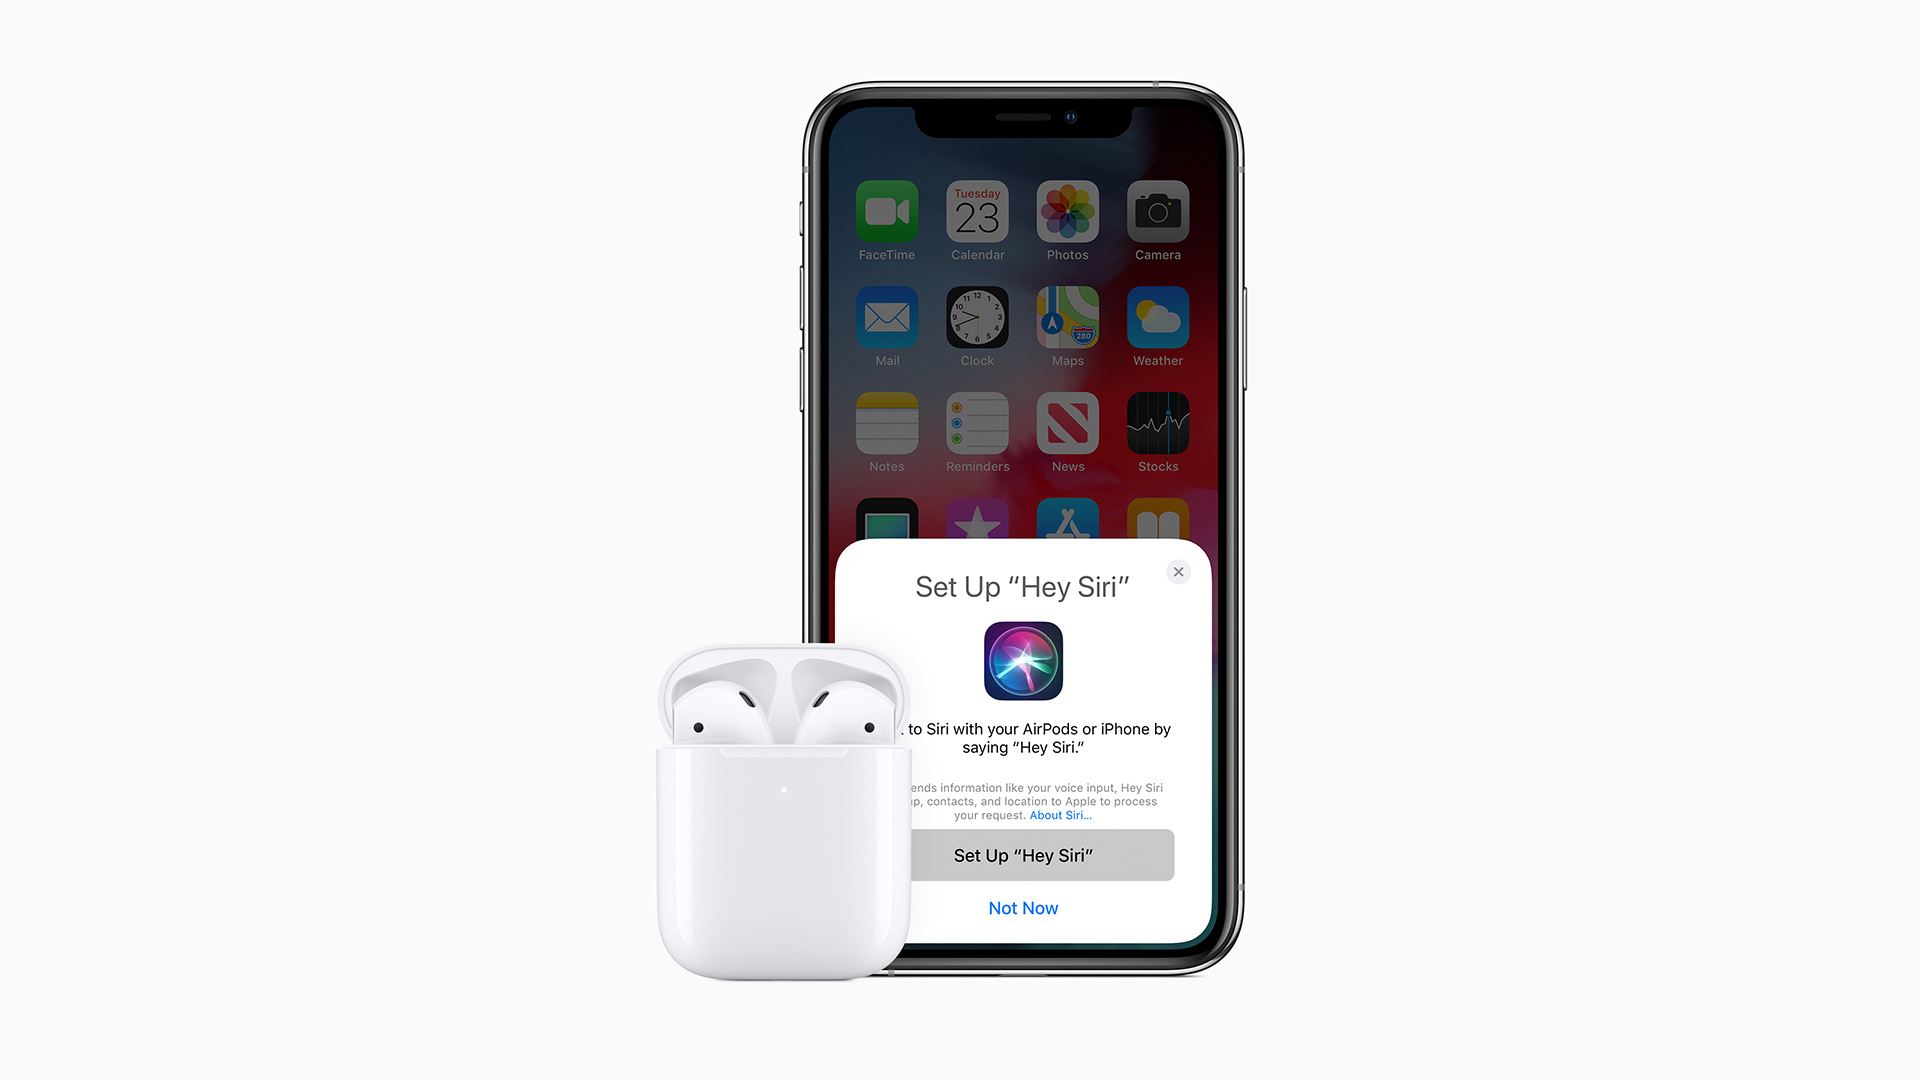 cd5efc23995 Apple has been on a roll with its launches, and after several reports, the  new AirPods have finally arrived. The first iteration of the company's  wireless ...